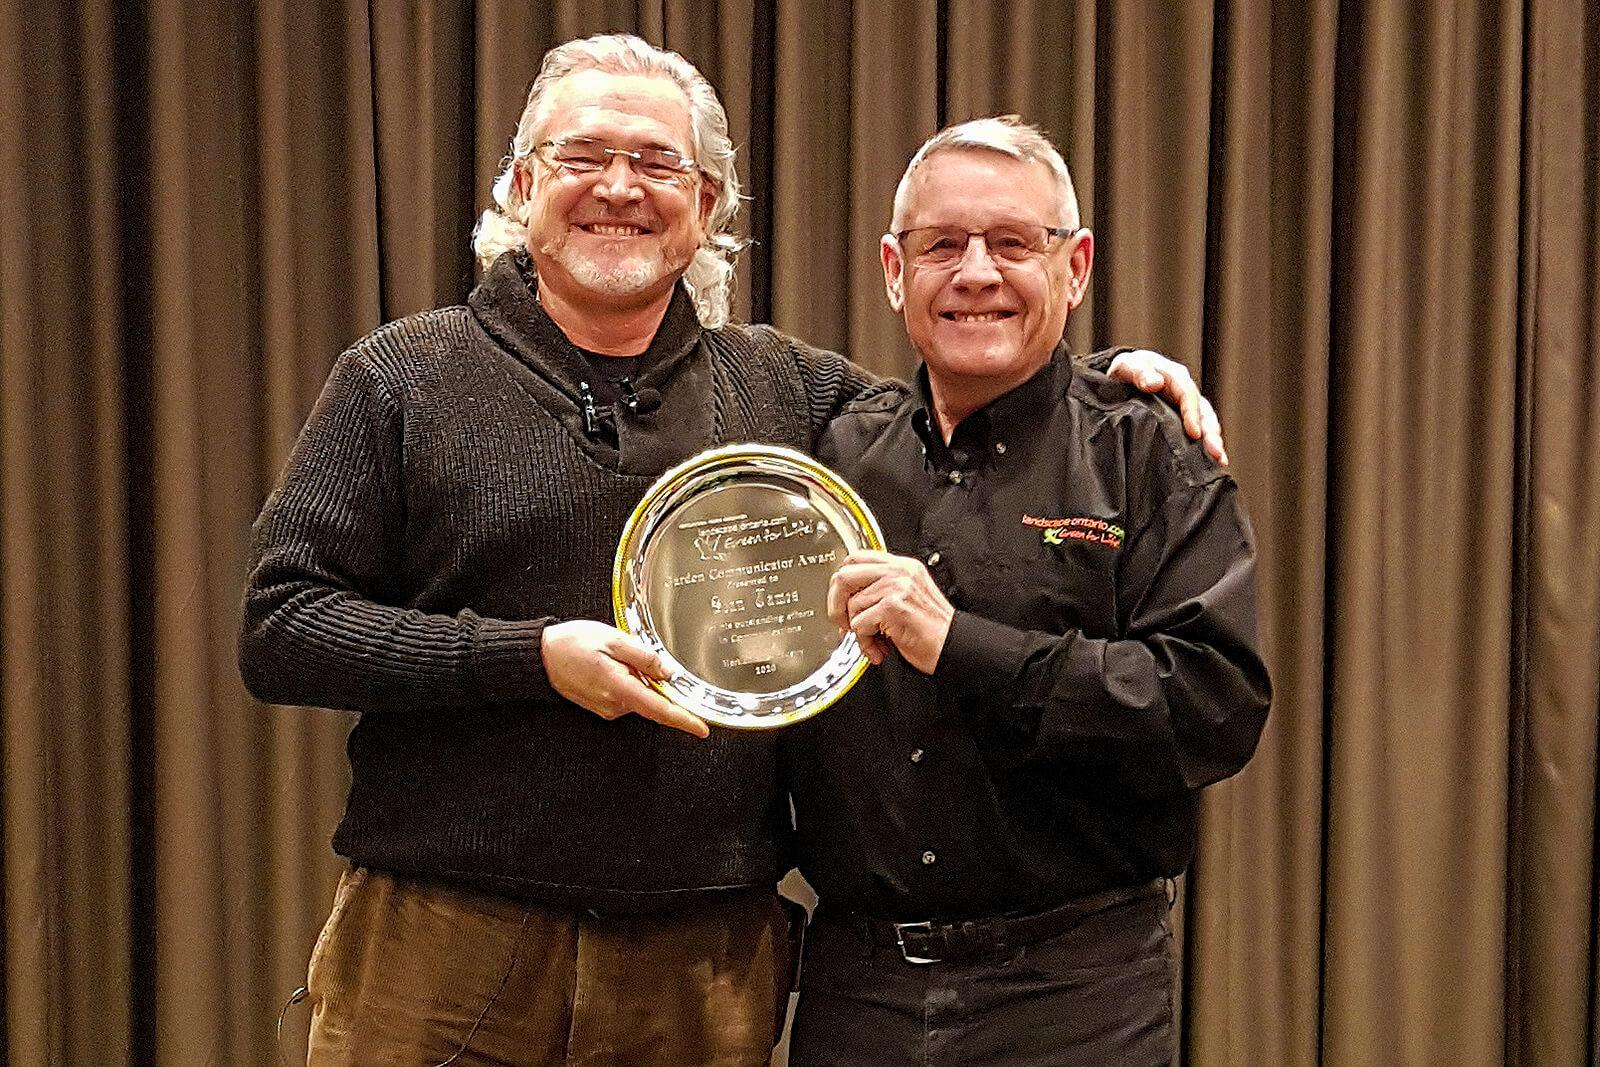 Landscape Ontario's Denis Flanagan (right) caught up with Sean James, owner of Sean James Consulting & Design, at the London Plant Symposium to present him with the 2020 Garden Communicator's Award.